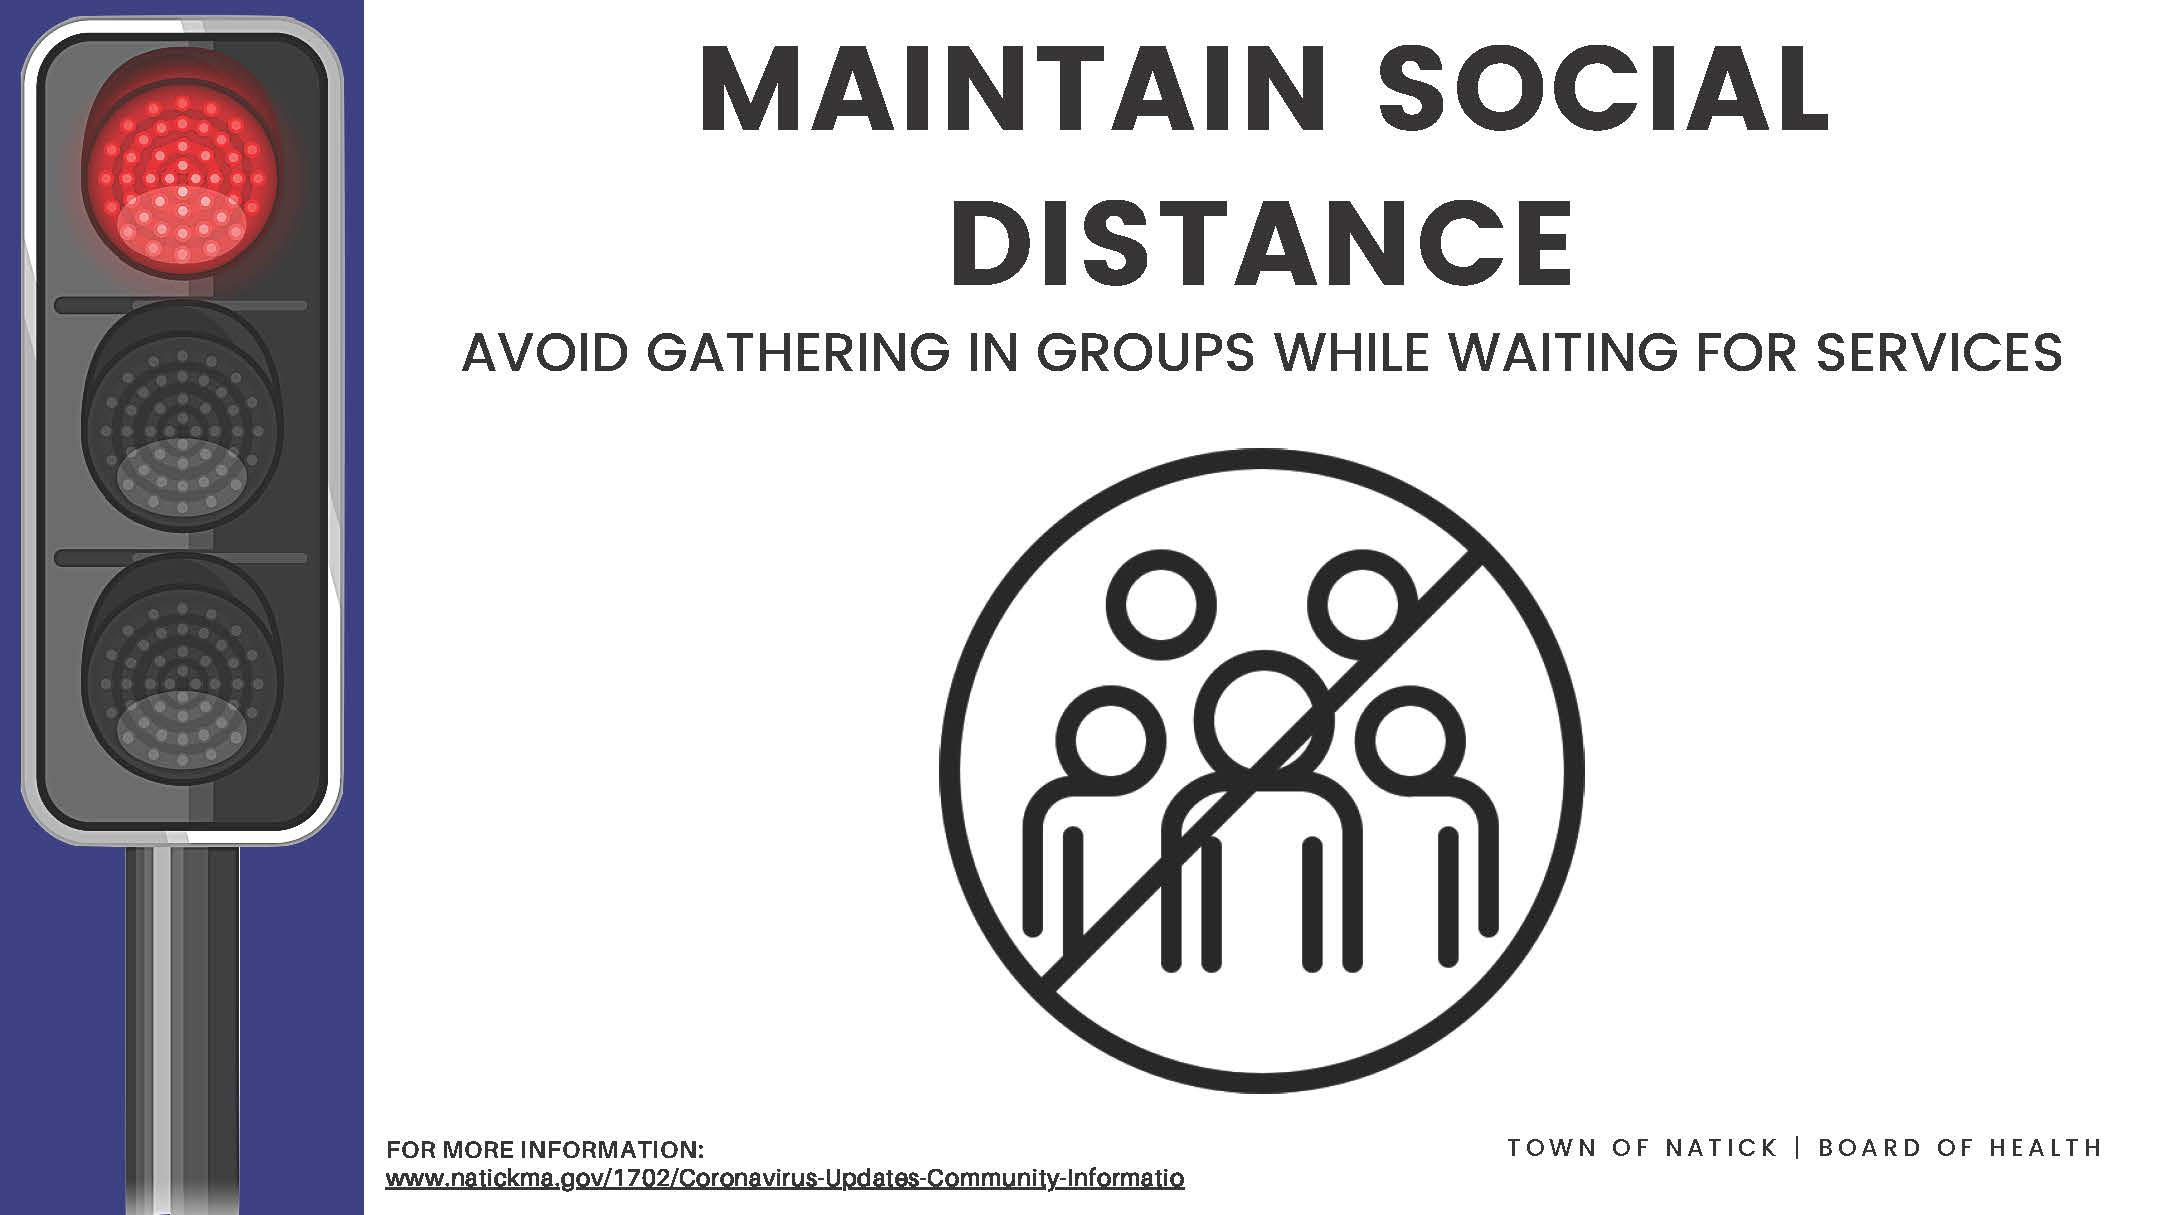 Maintain Social Distance Avoid Gathering Poster